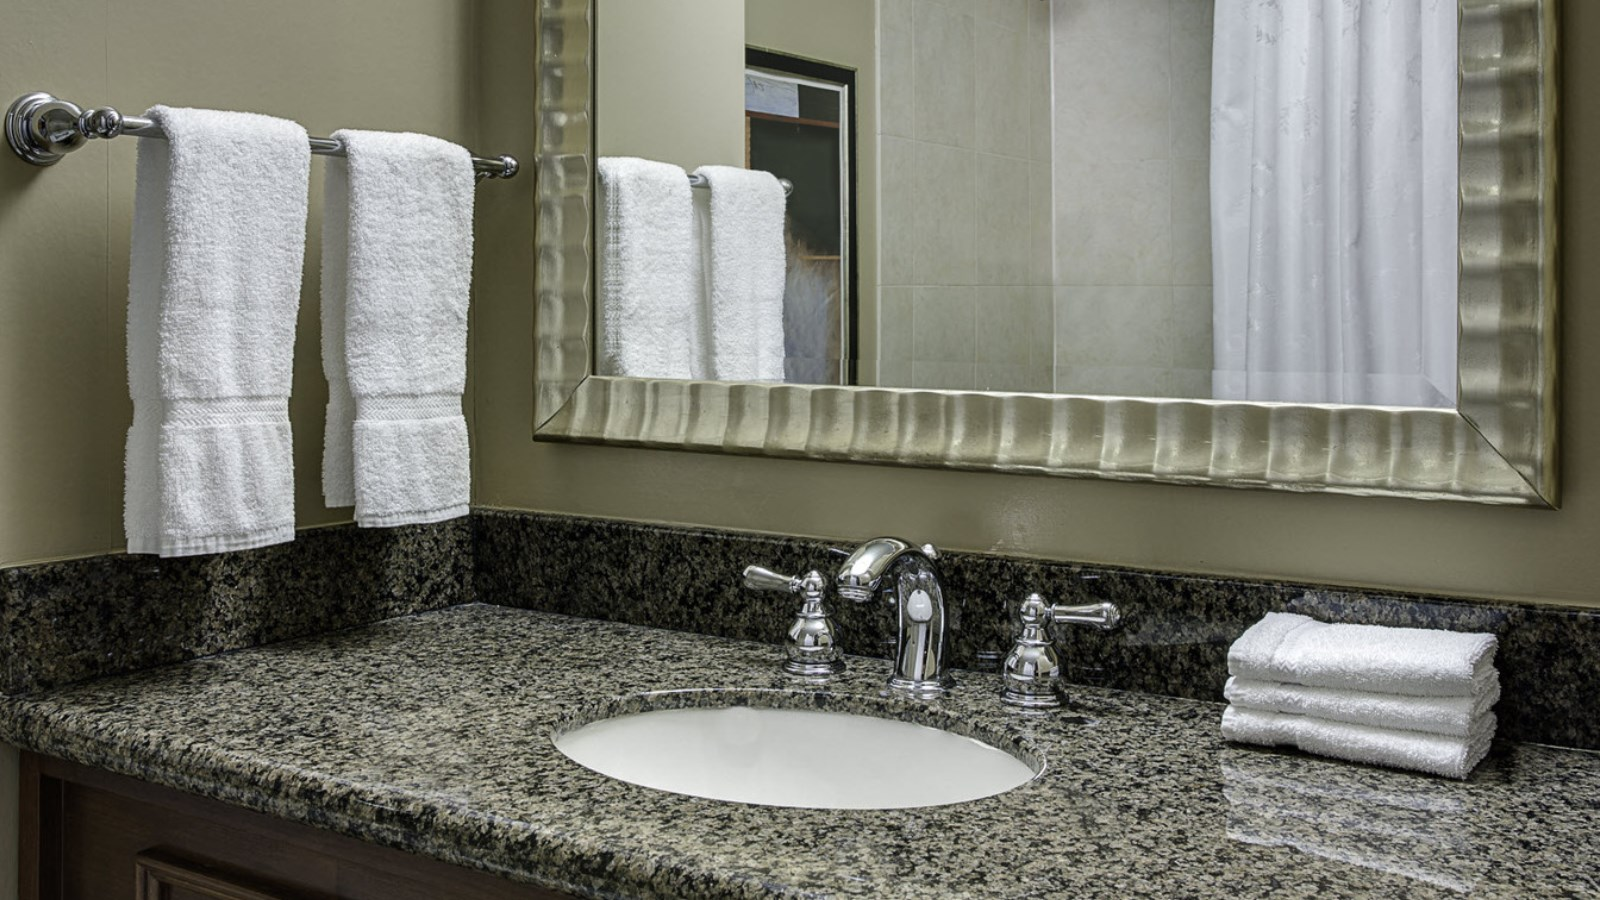 Bathroom Sinks Okc hotels in okc | sheraton oklahoma city downtown hotel